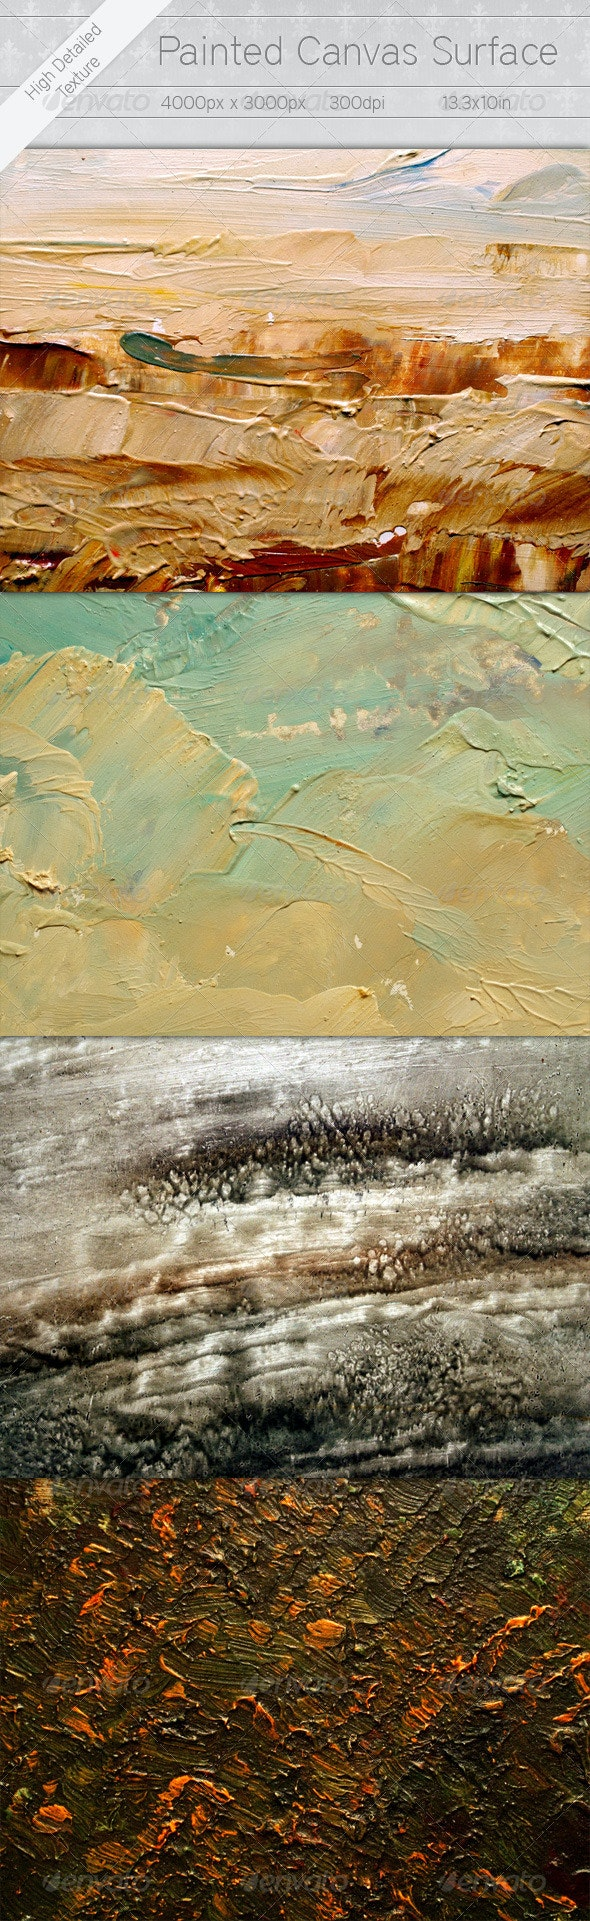 Painted Canvas Surface - Art Textures